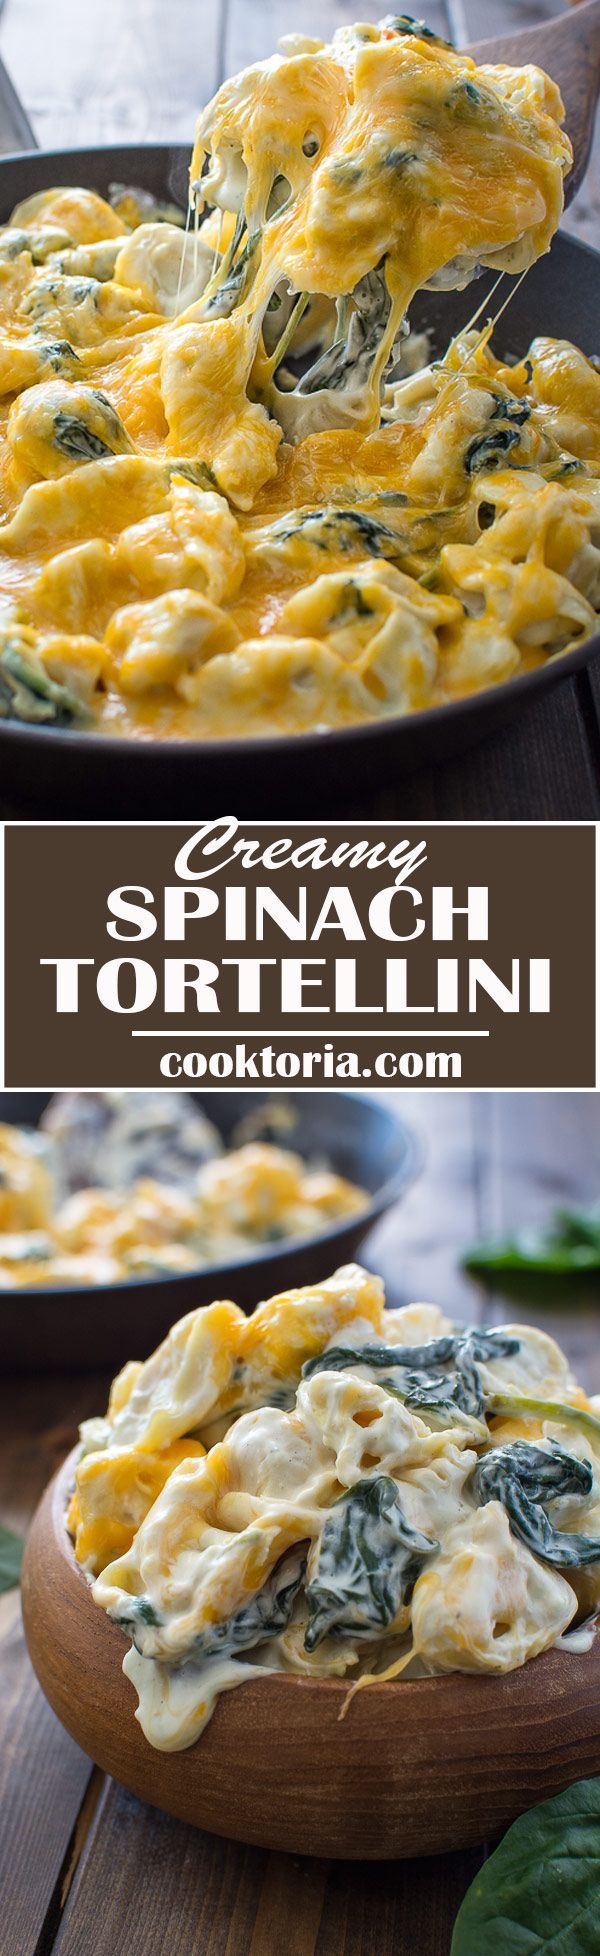 This 5-ingredient Creamy Spinach Tortellini makes a quick and tasty dinner that all the family will love!